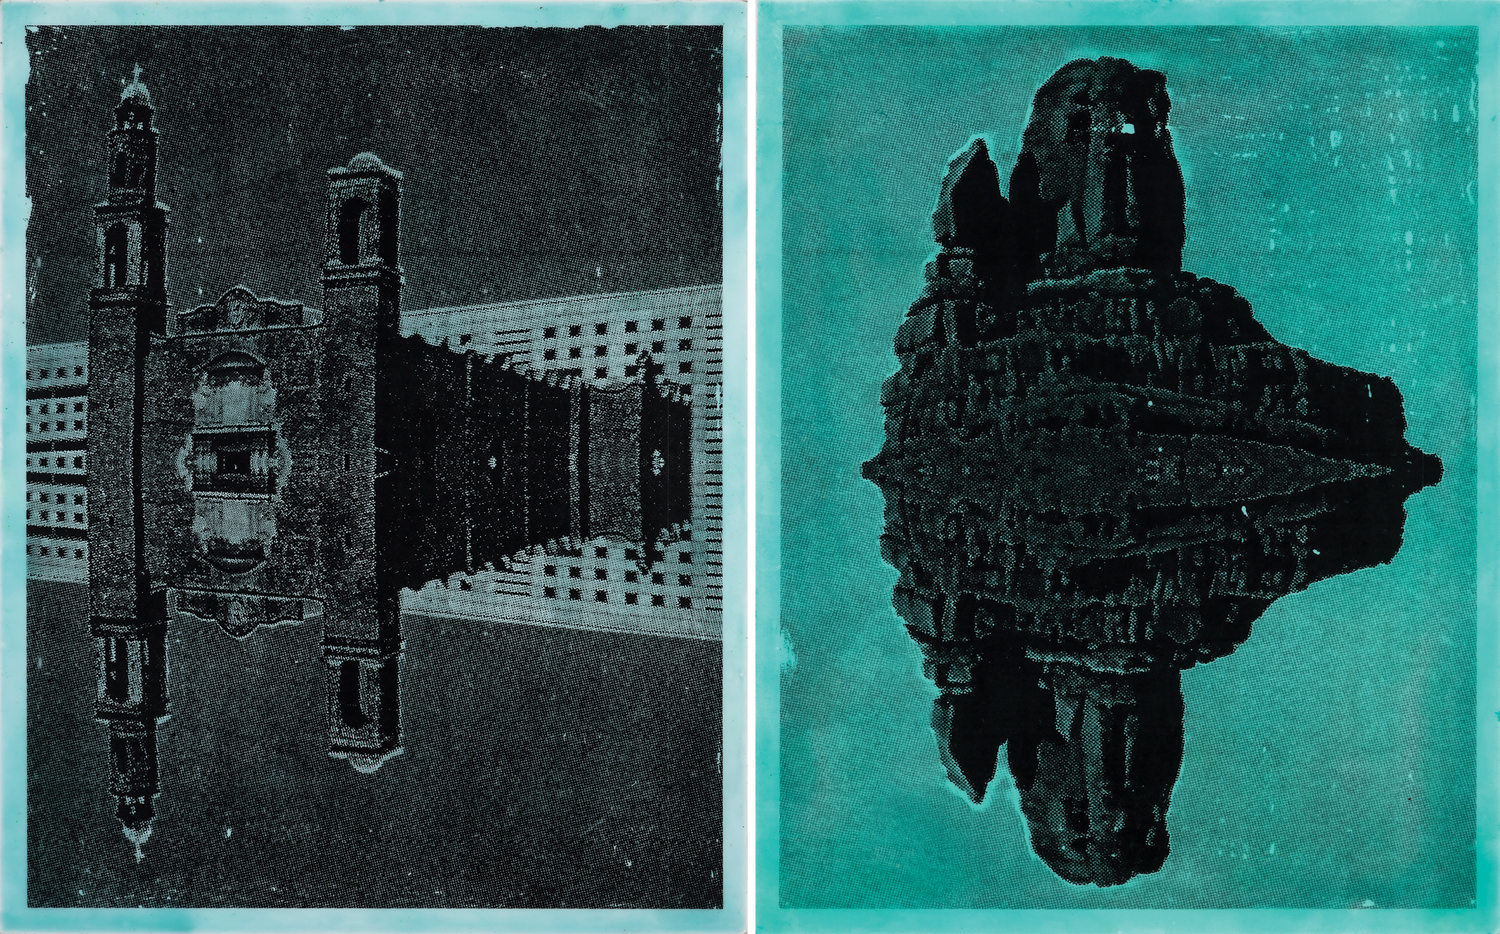 Pieces by Claudia Peña Salinas (from left, Tlatelolco and Owl, both 2018).